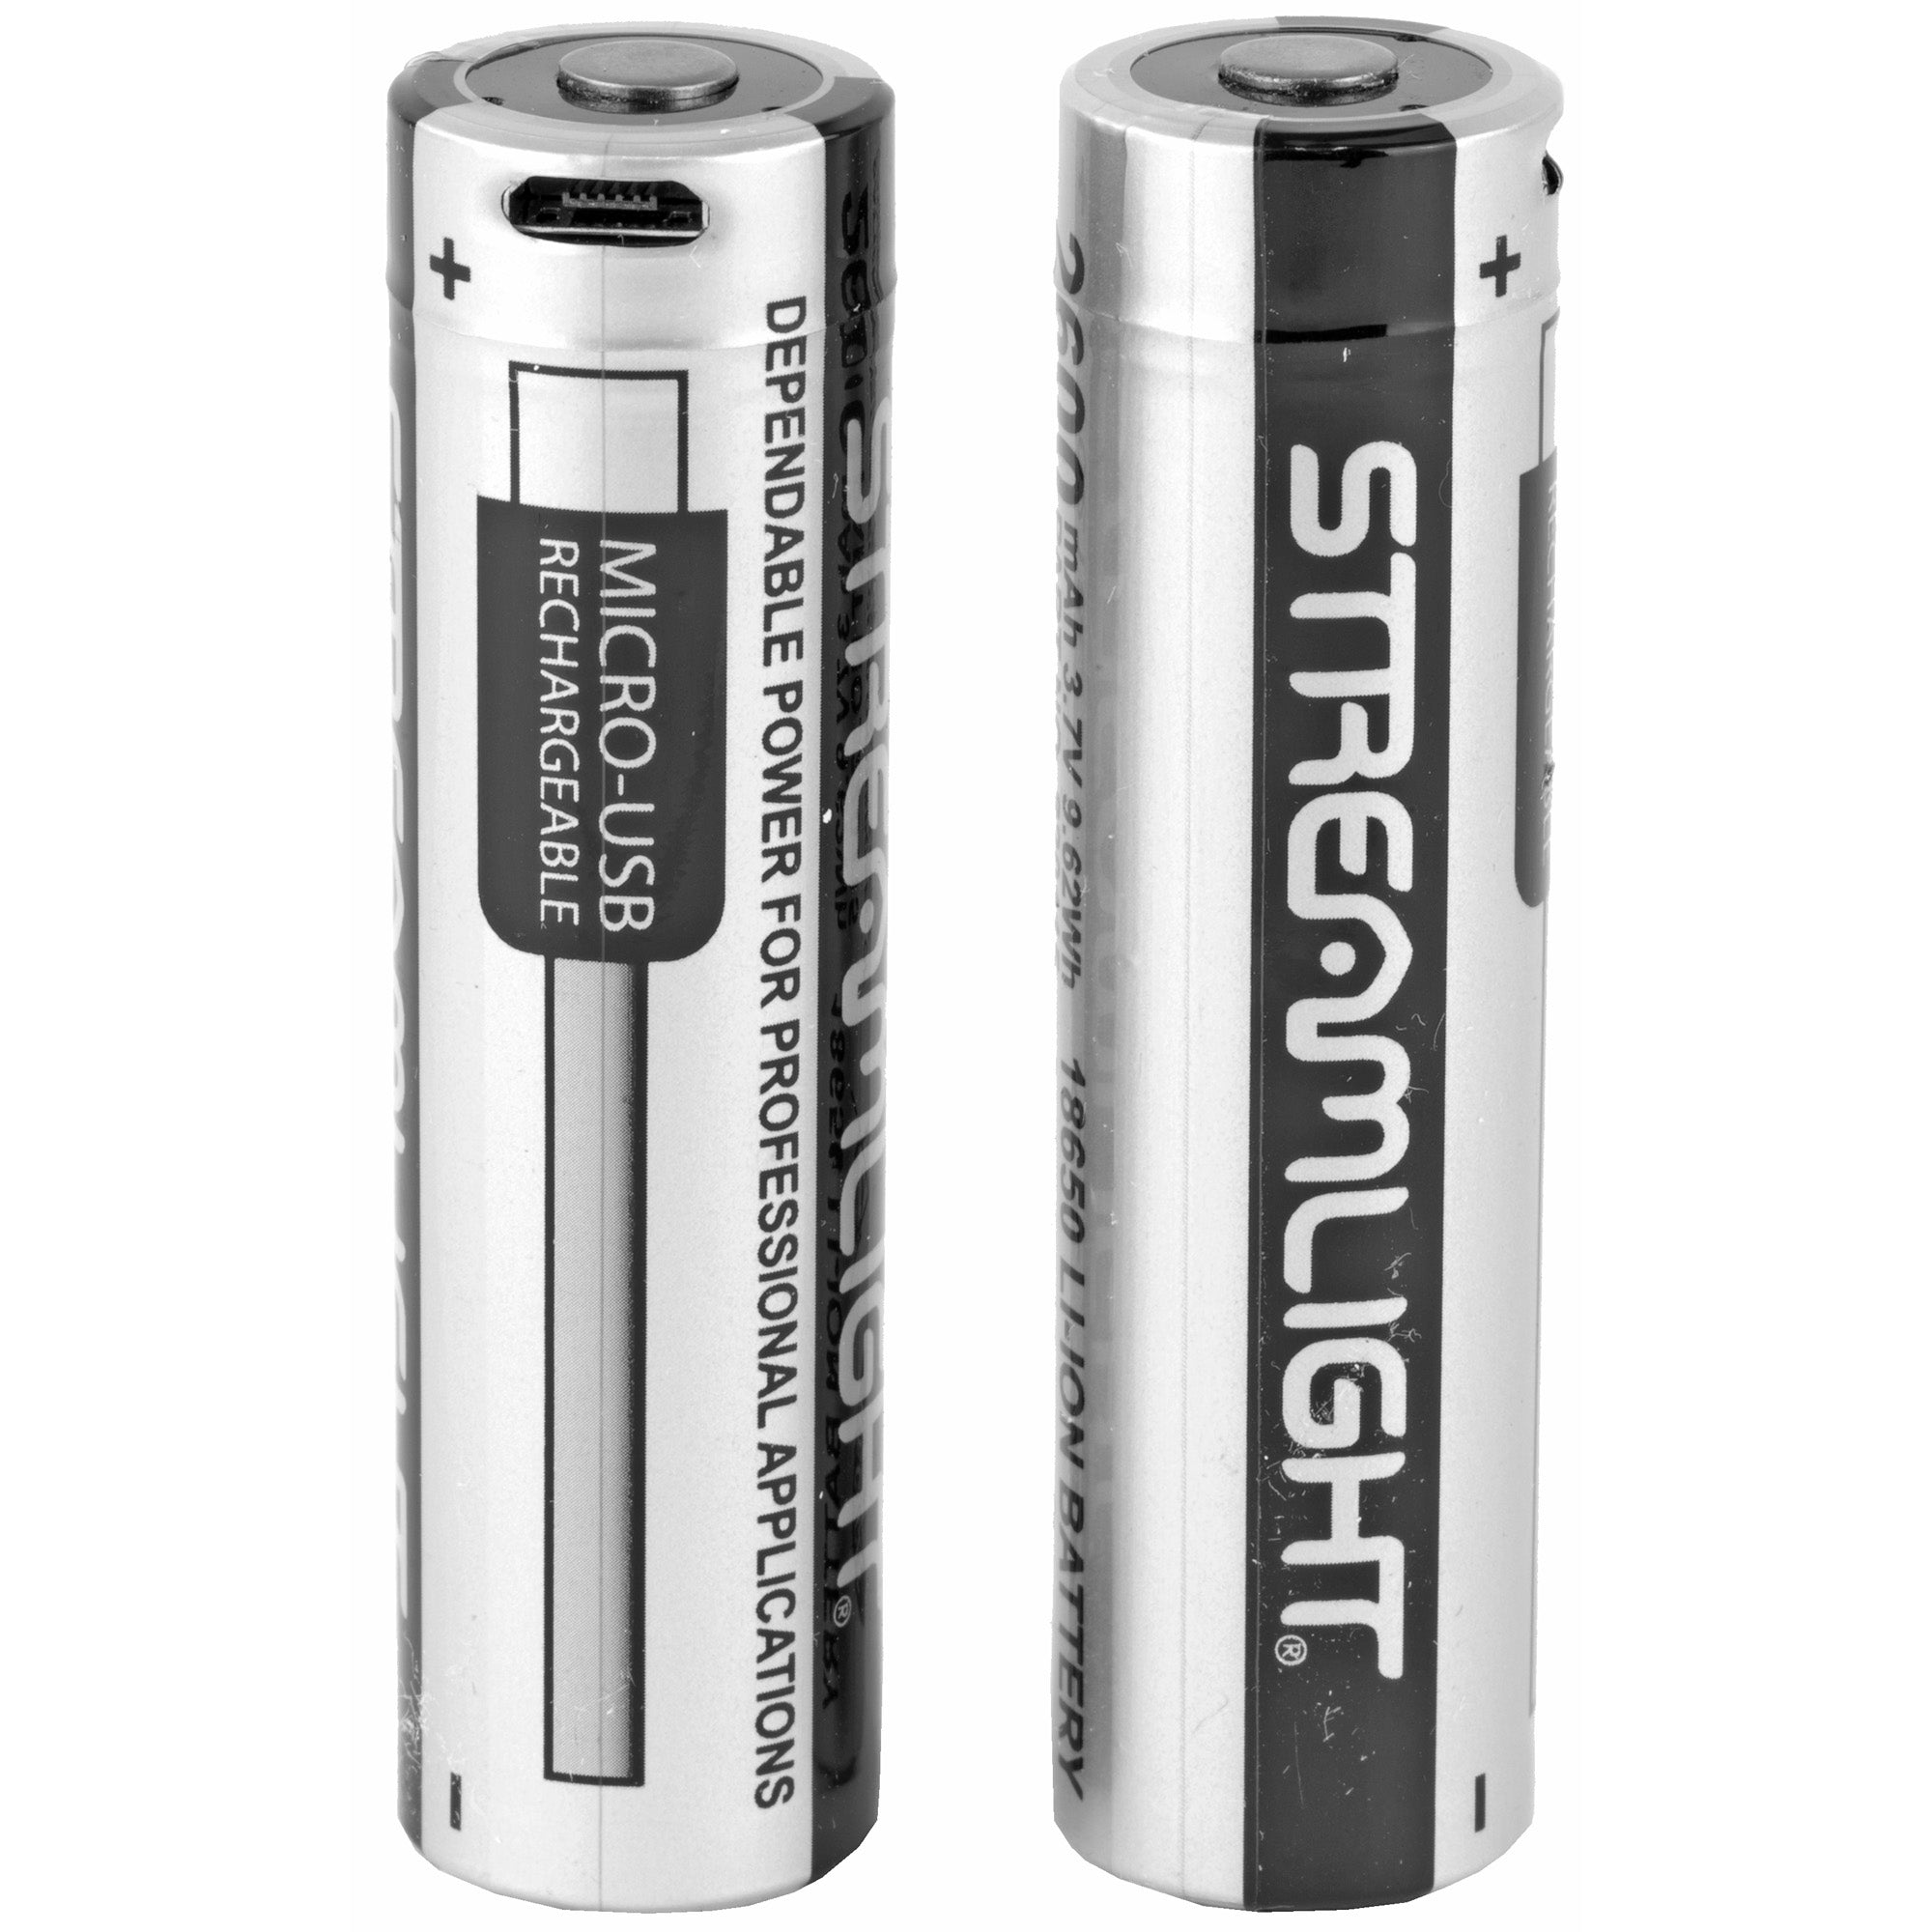 Streamlight 18650 USB Rechargeable Battery